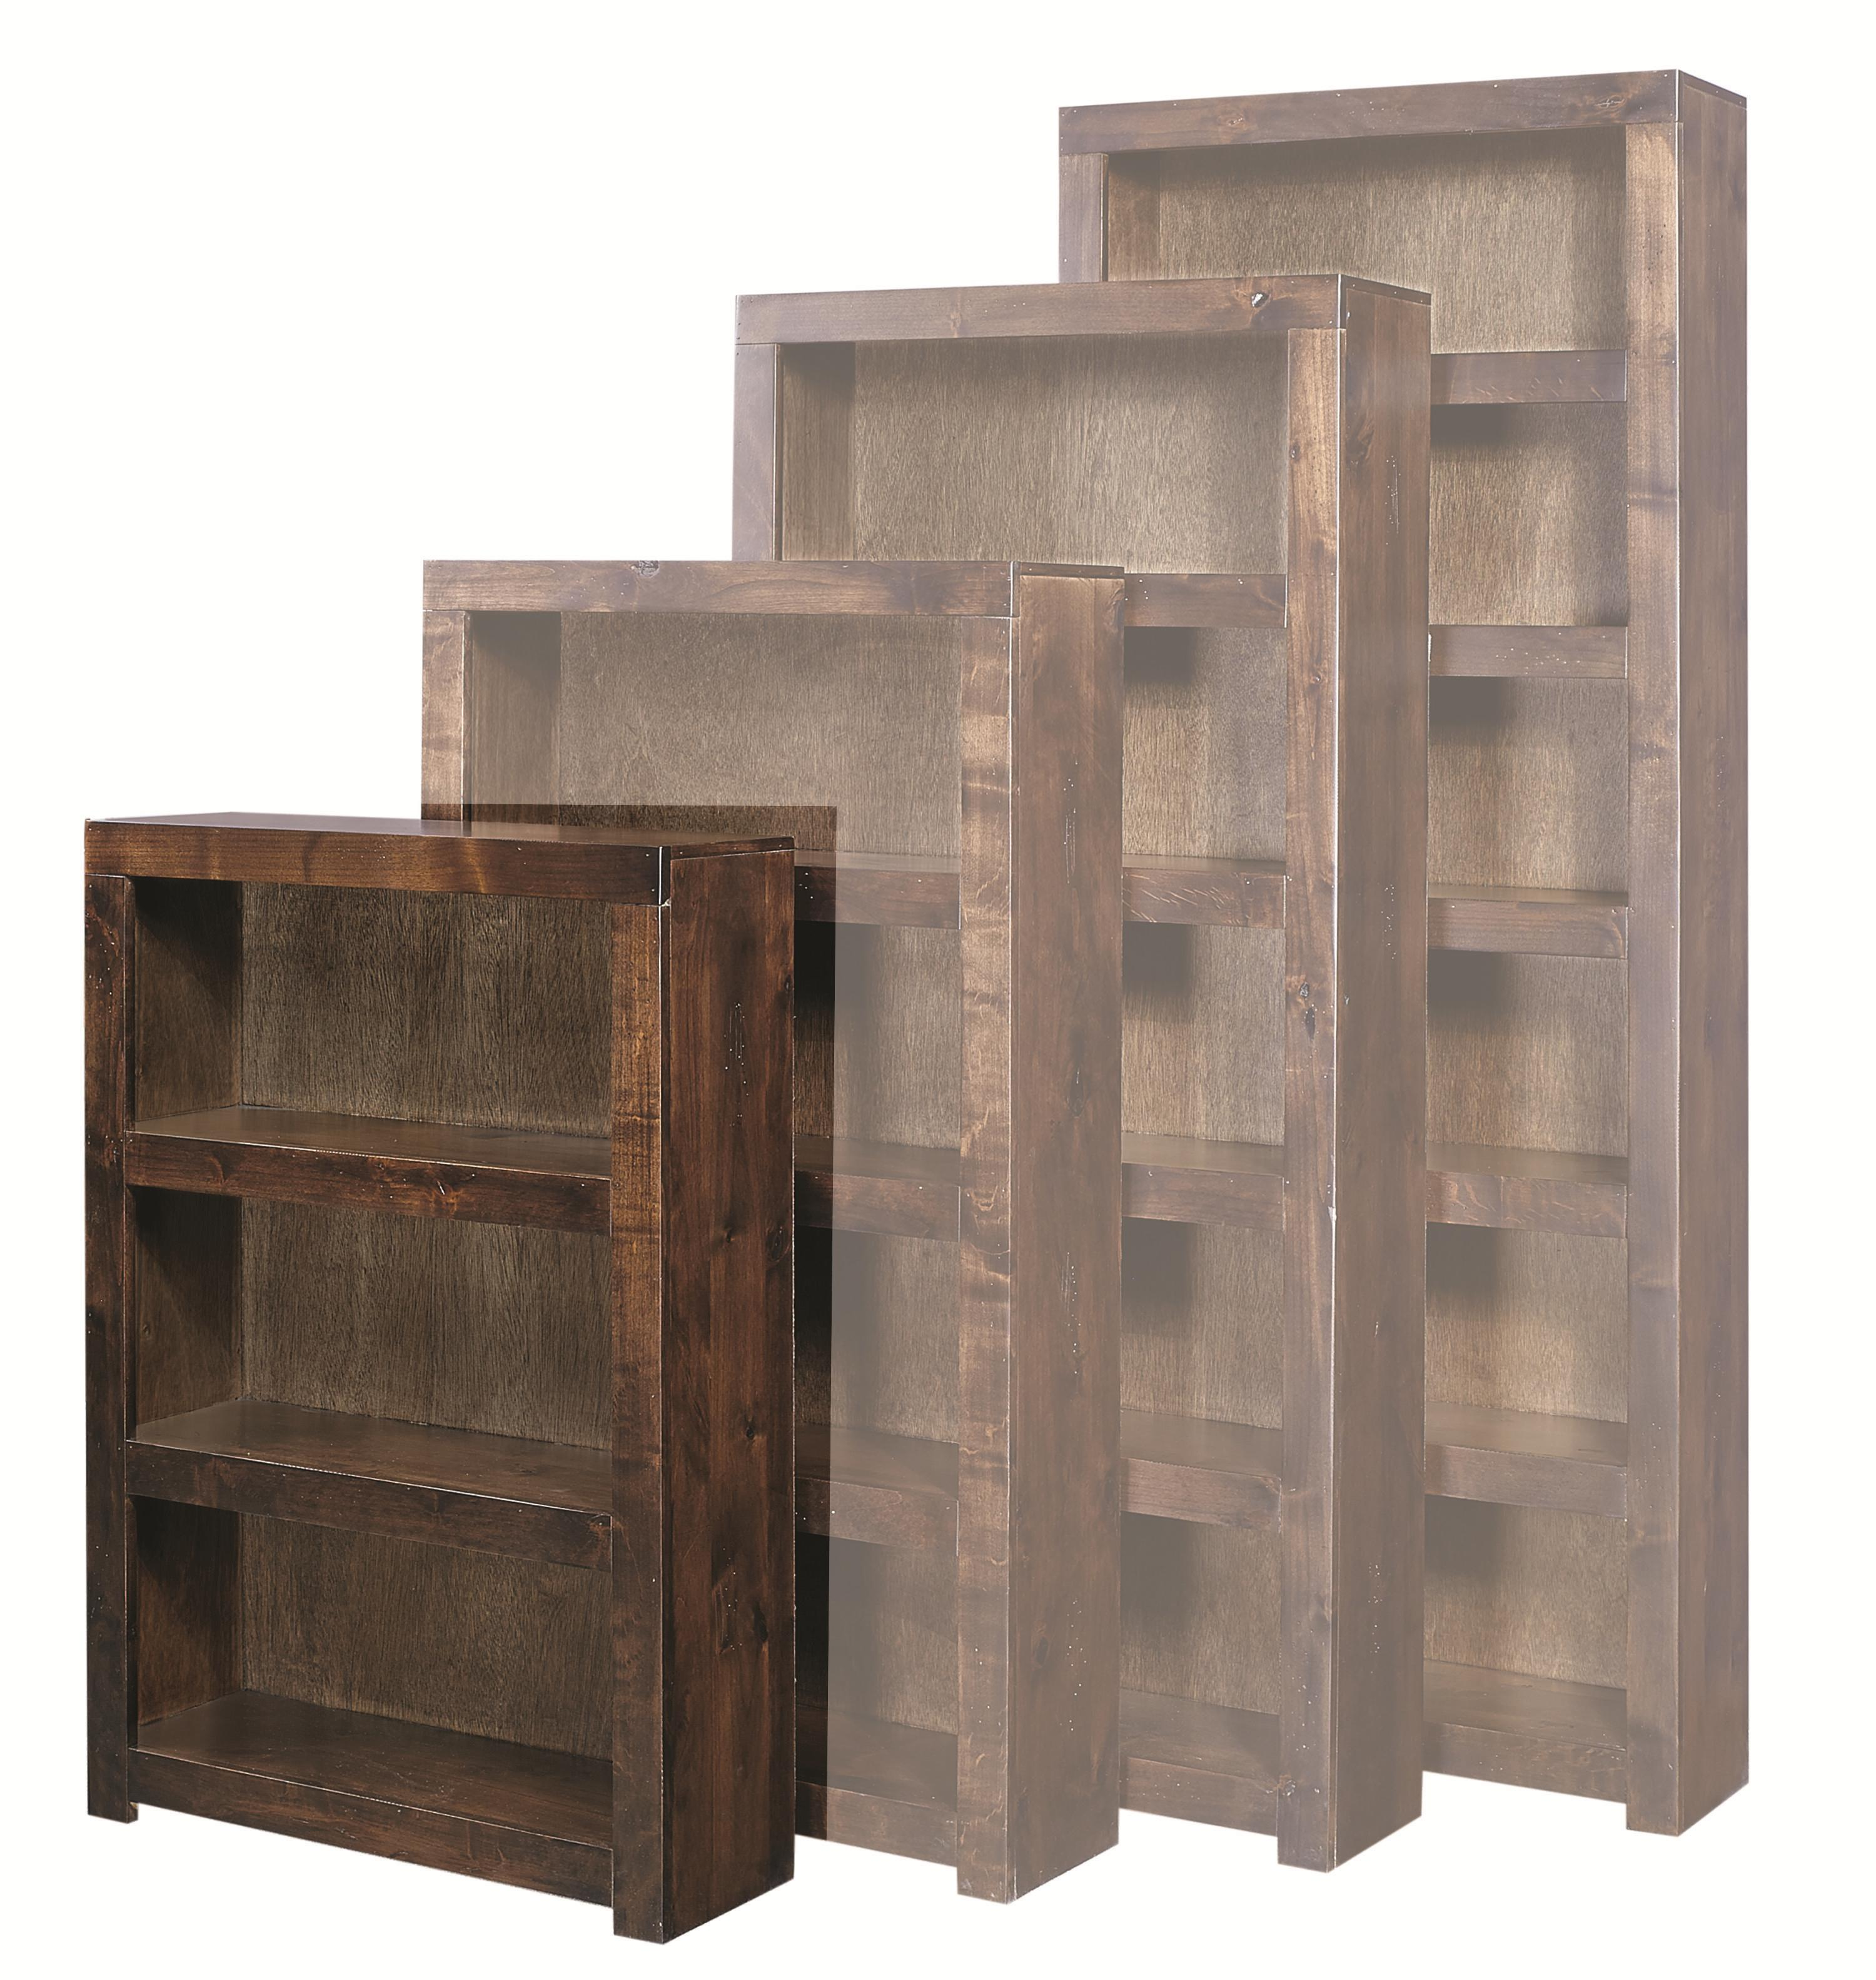 Contemporary Alder 48 Inch Bookcase by Aspenhome at Baer's Furniture